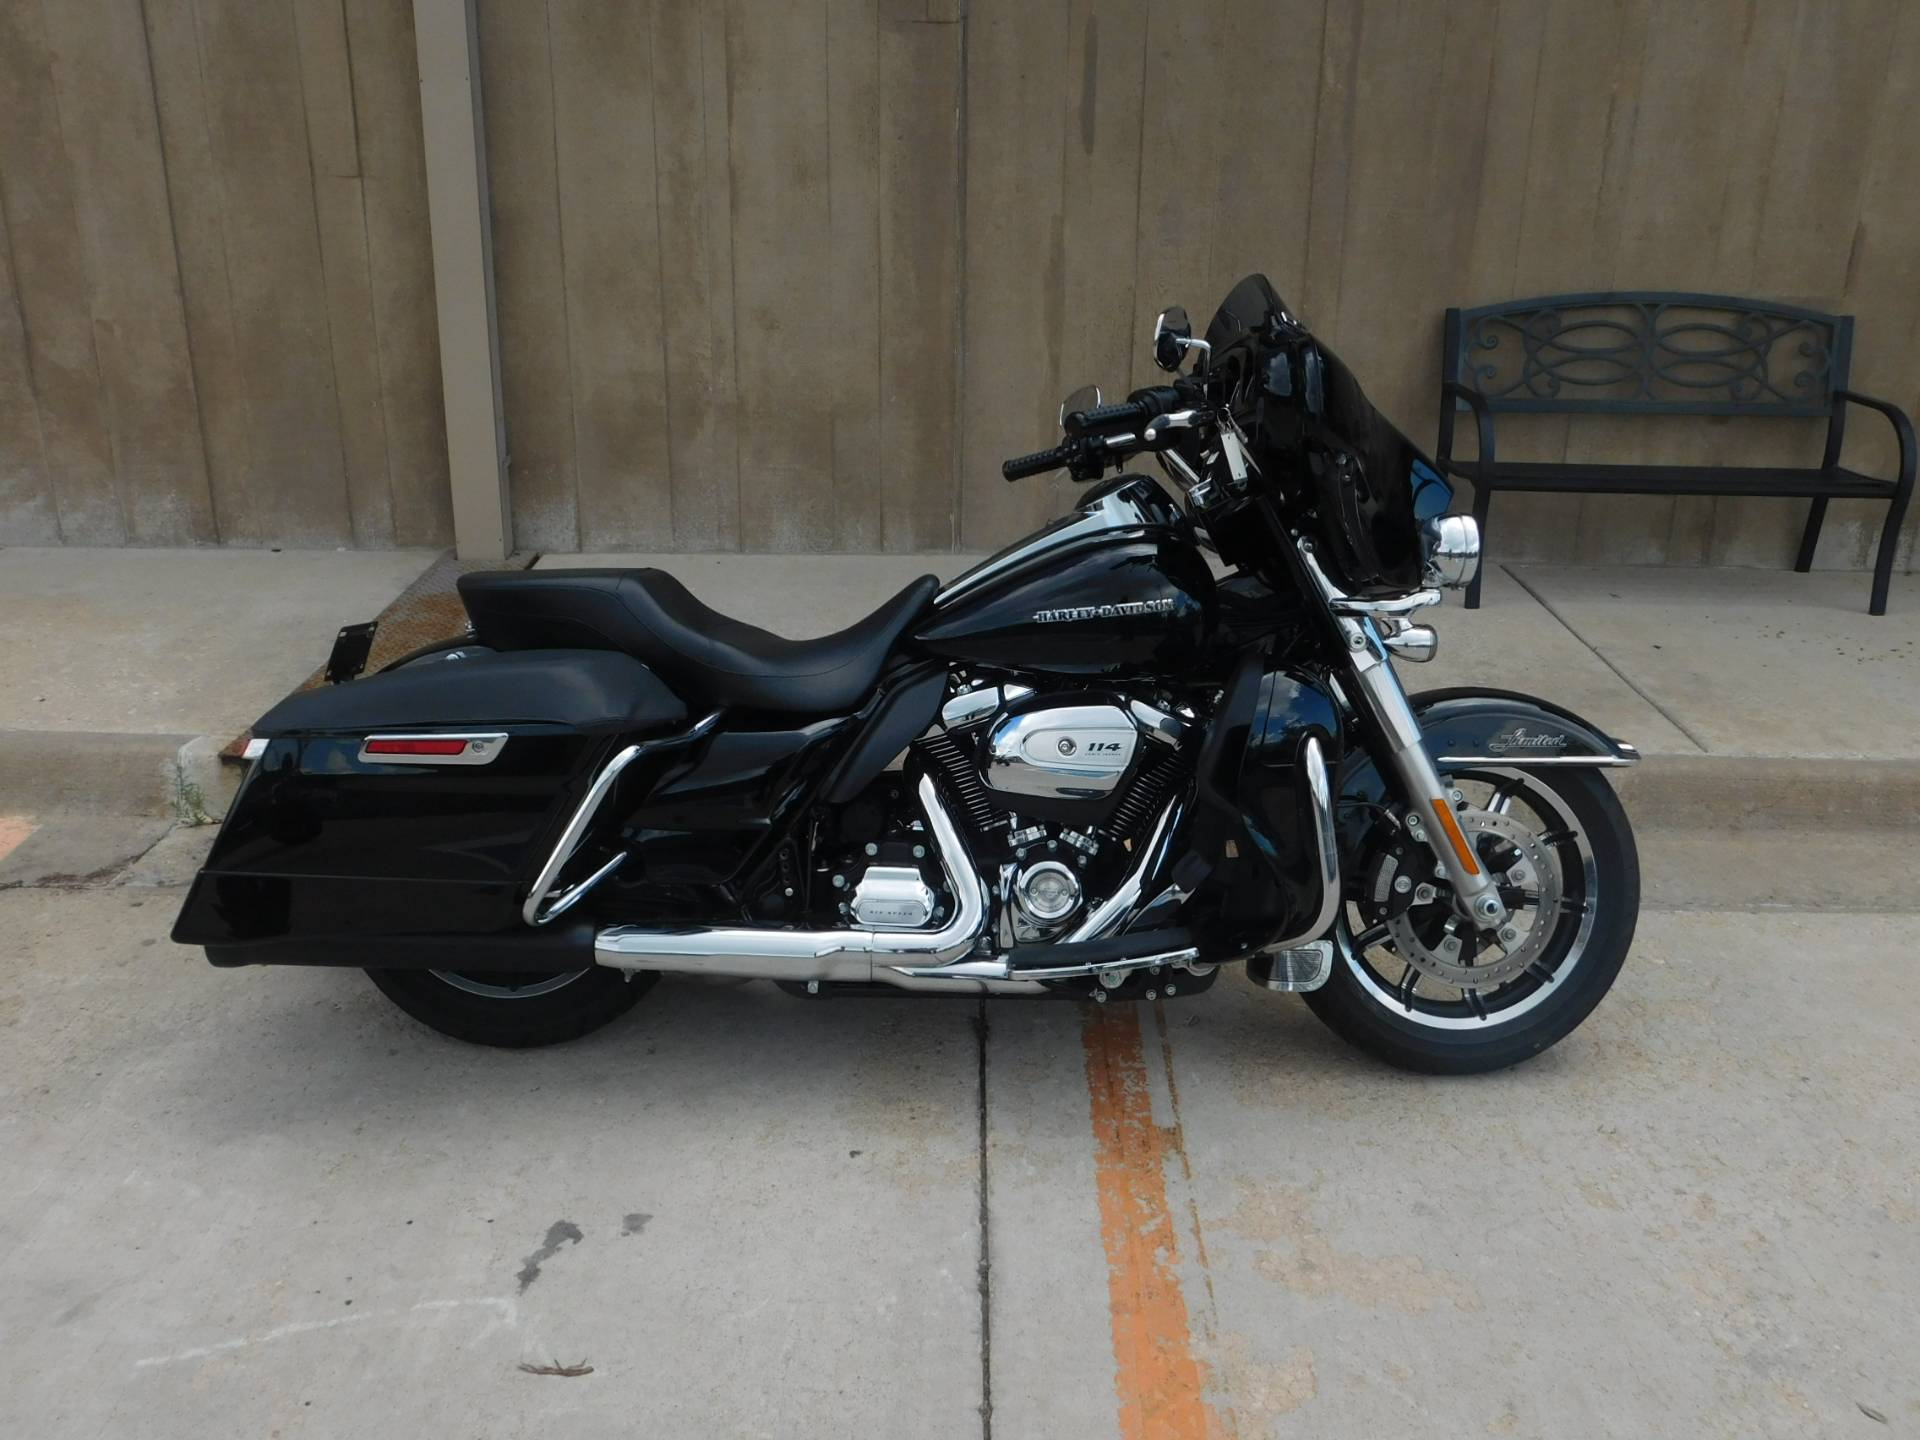 2019 Harley-Davidson Ultra Limited Low in Colorado Springs, Colorado - Photo 1